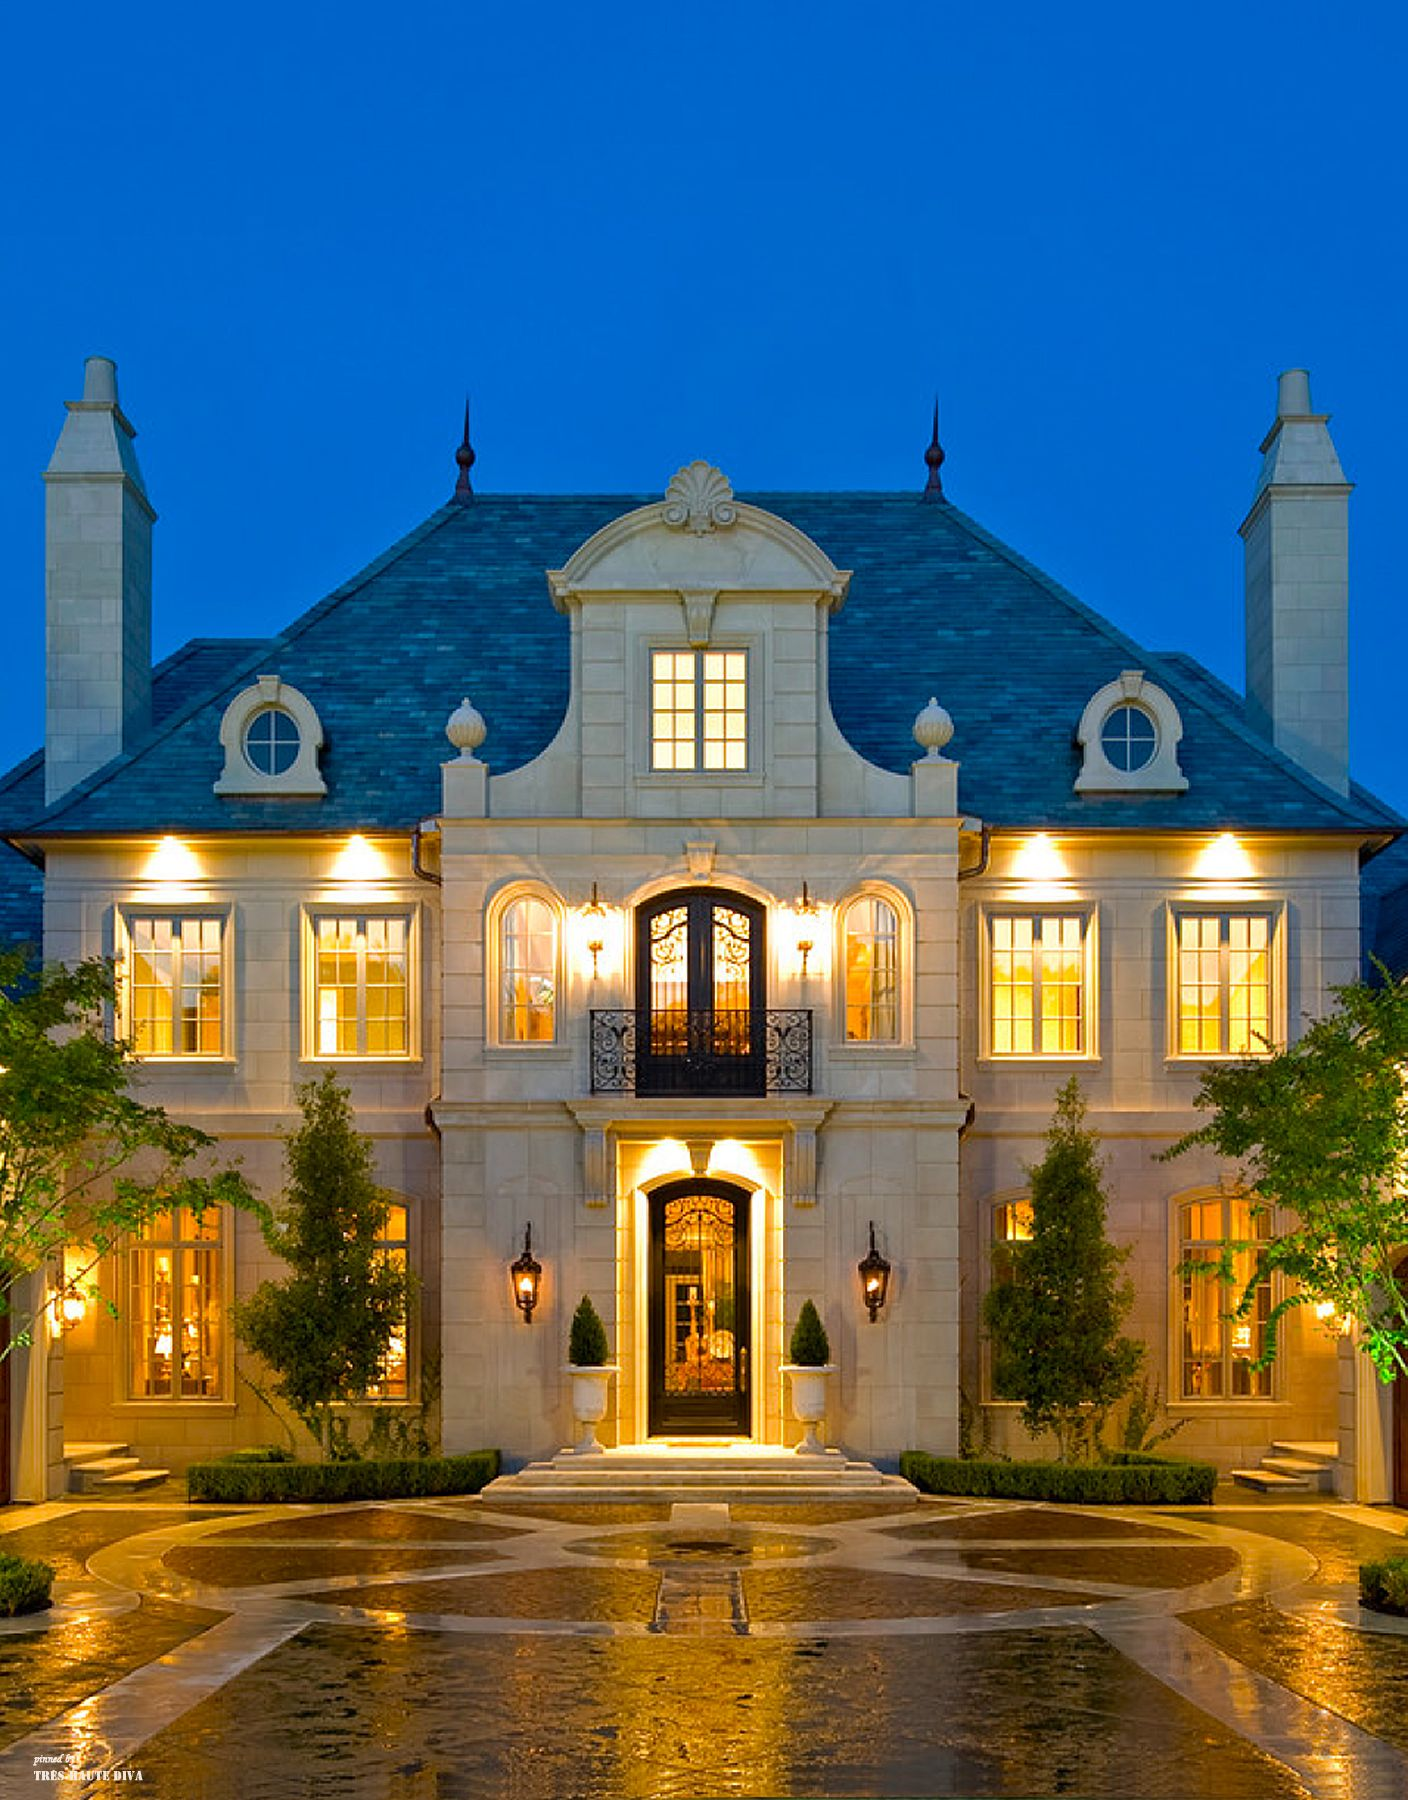 French Style Mansion … | Mansions, French architecture ... on french empire inspired homes, french architecture homes, famous french homes, beautiful houses more, italian villa homes, elegant french homes, beautiful home plans, cottage homes, classic spanish homes, french doors for mobile homes, south of france homes, classic french homes, luxury french homes, modern french homes, georgian style homes, french country homes, traditional french homes,